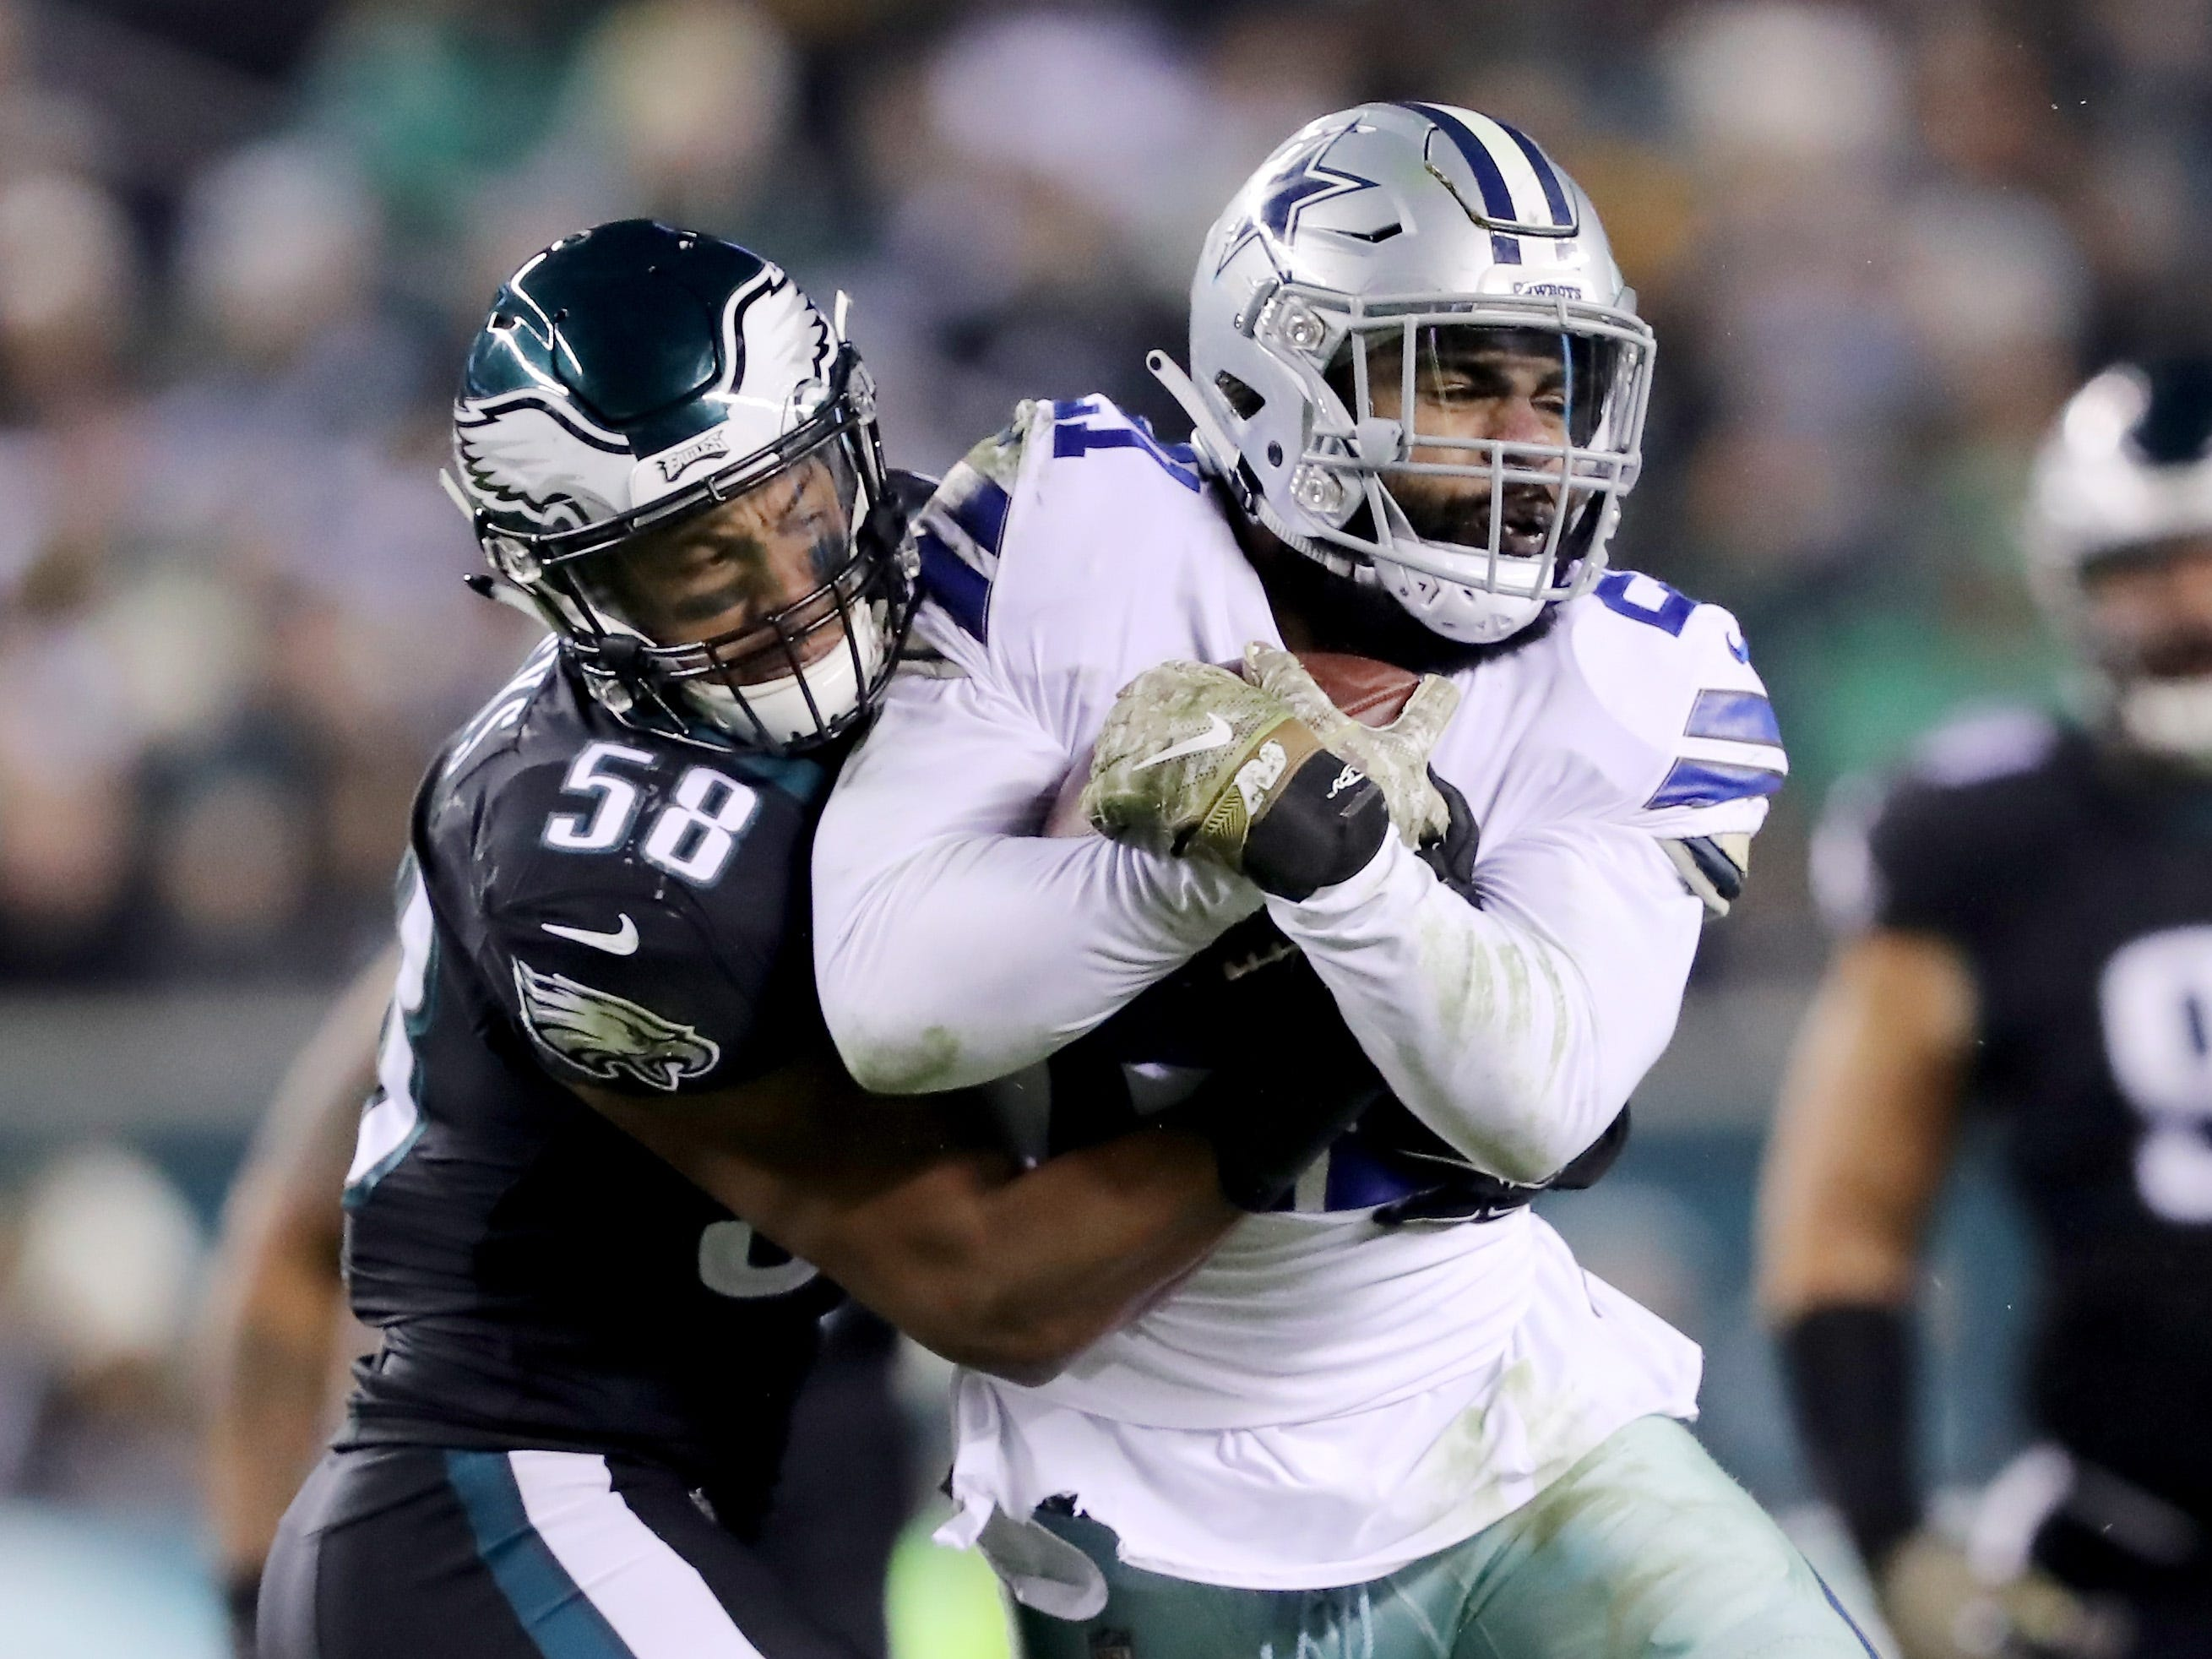 Jordan Hicks, LB, Philadelphia: If it wasn't for his injury history, Hicks would be in the conversation as one of the NFL's best inside linebackers. He's shown the ability to cover, with seven interceptions in 43 career games, as well as outstanding pursuit angles and tackling skills when defending the run. The durability issues can't be ignored, though. He's missed at least four games in three of his four seasons, including last year.